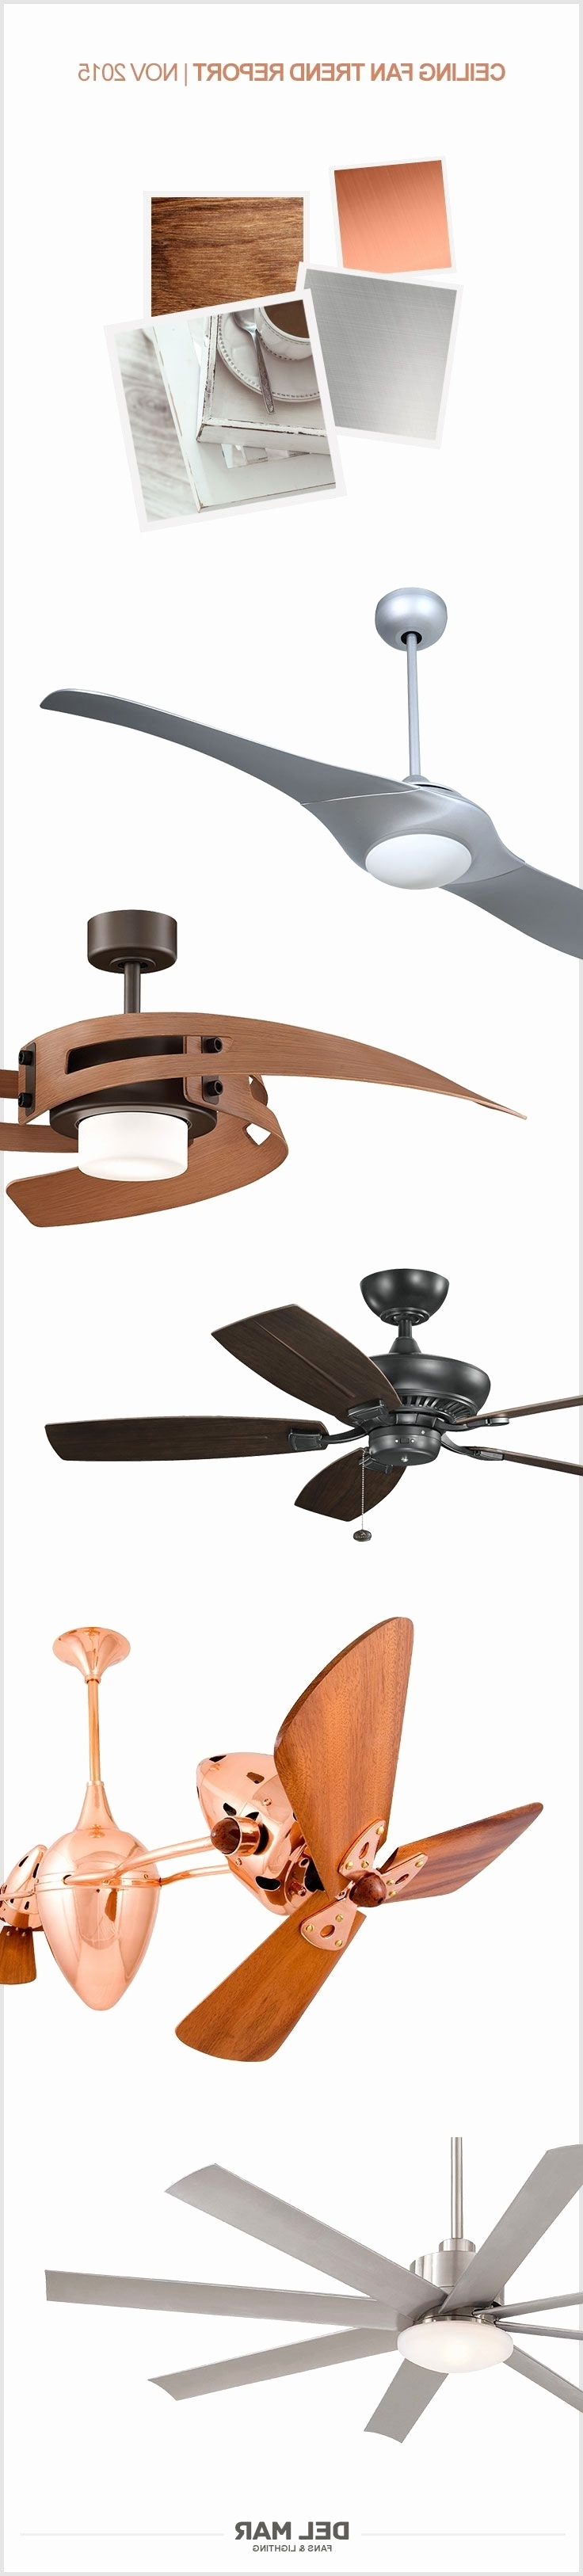 Outdoor Ceiling Fans With High Cfm Throughout 2019 High Cfm Ceiling Fan Outdoor – Ceiling Design Ideas (View 13 of 20)